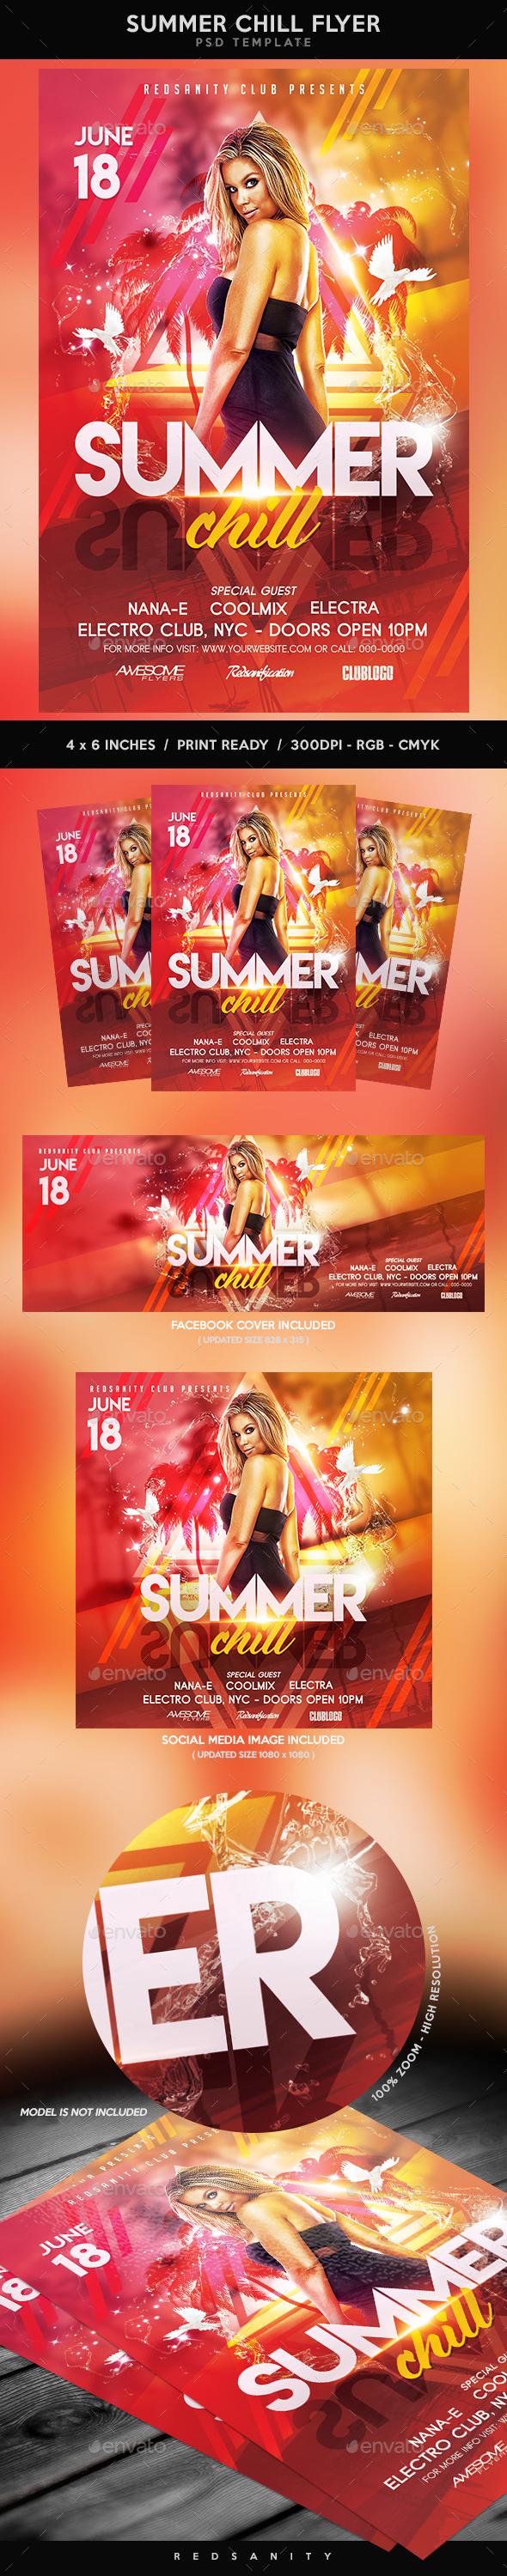 Summer Chill Flyer - Clubs & Parties Events